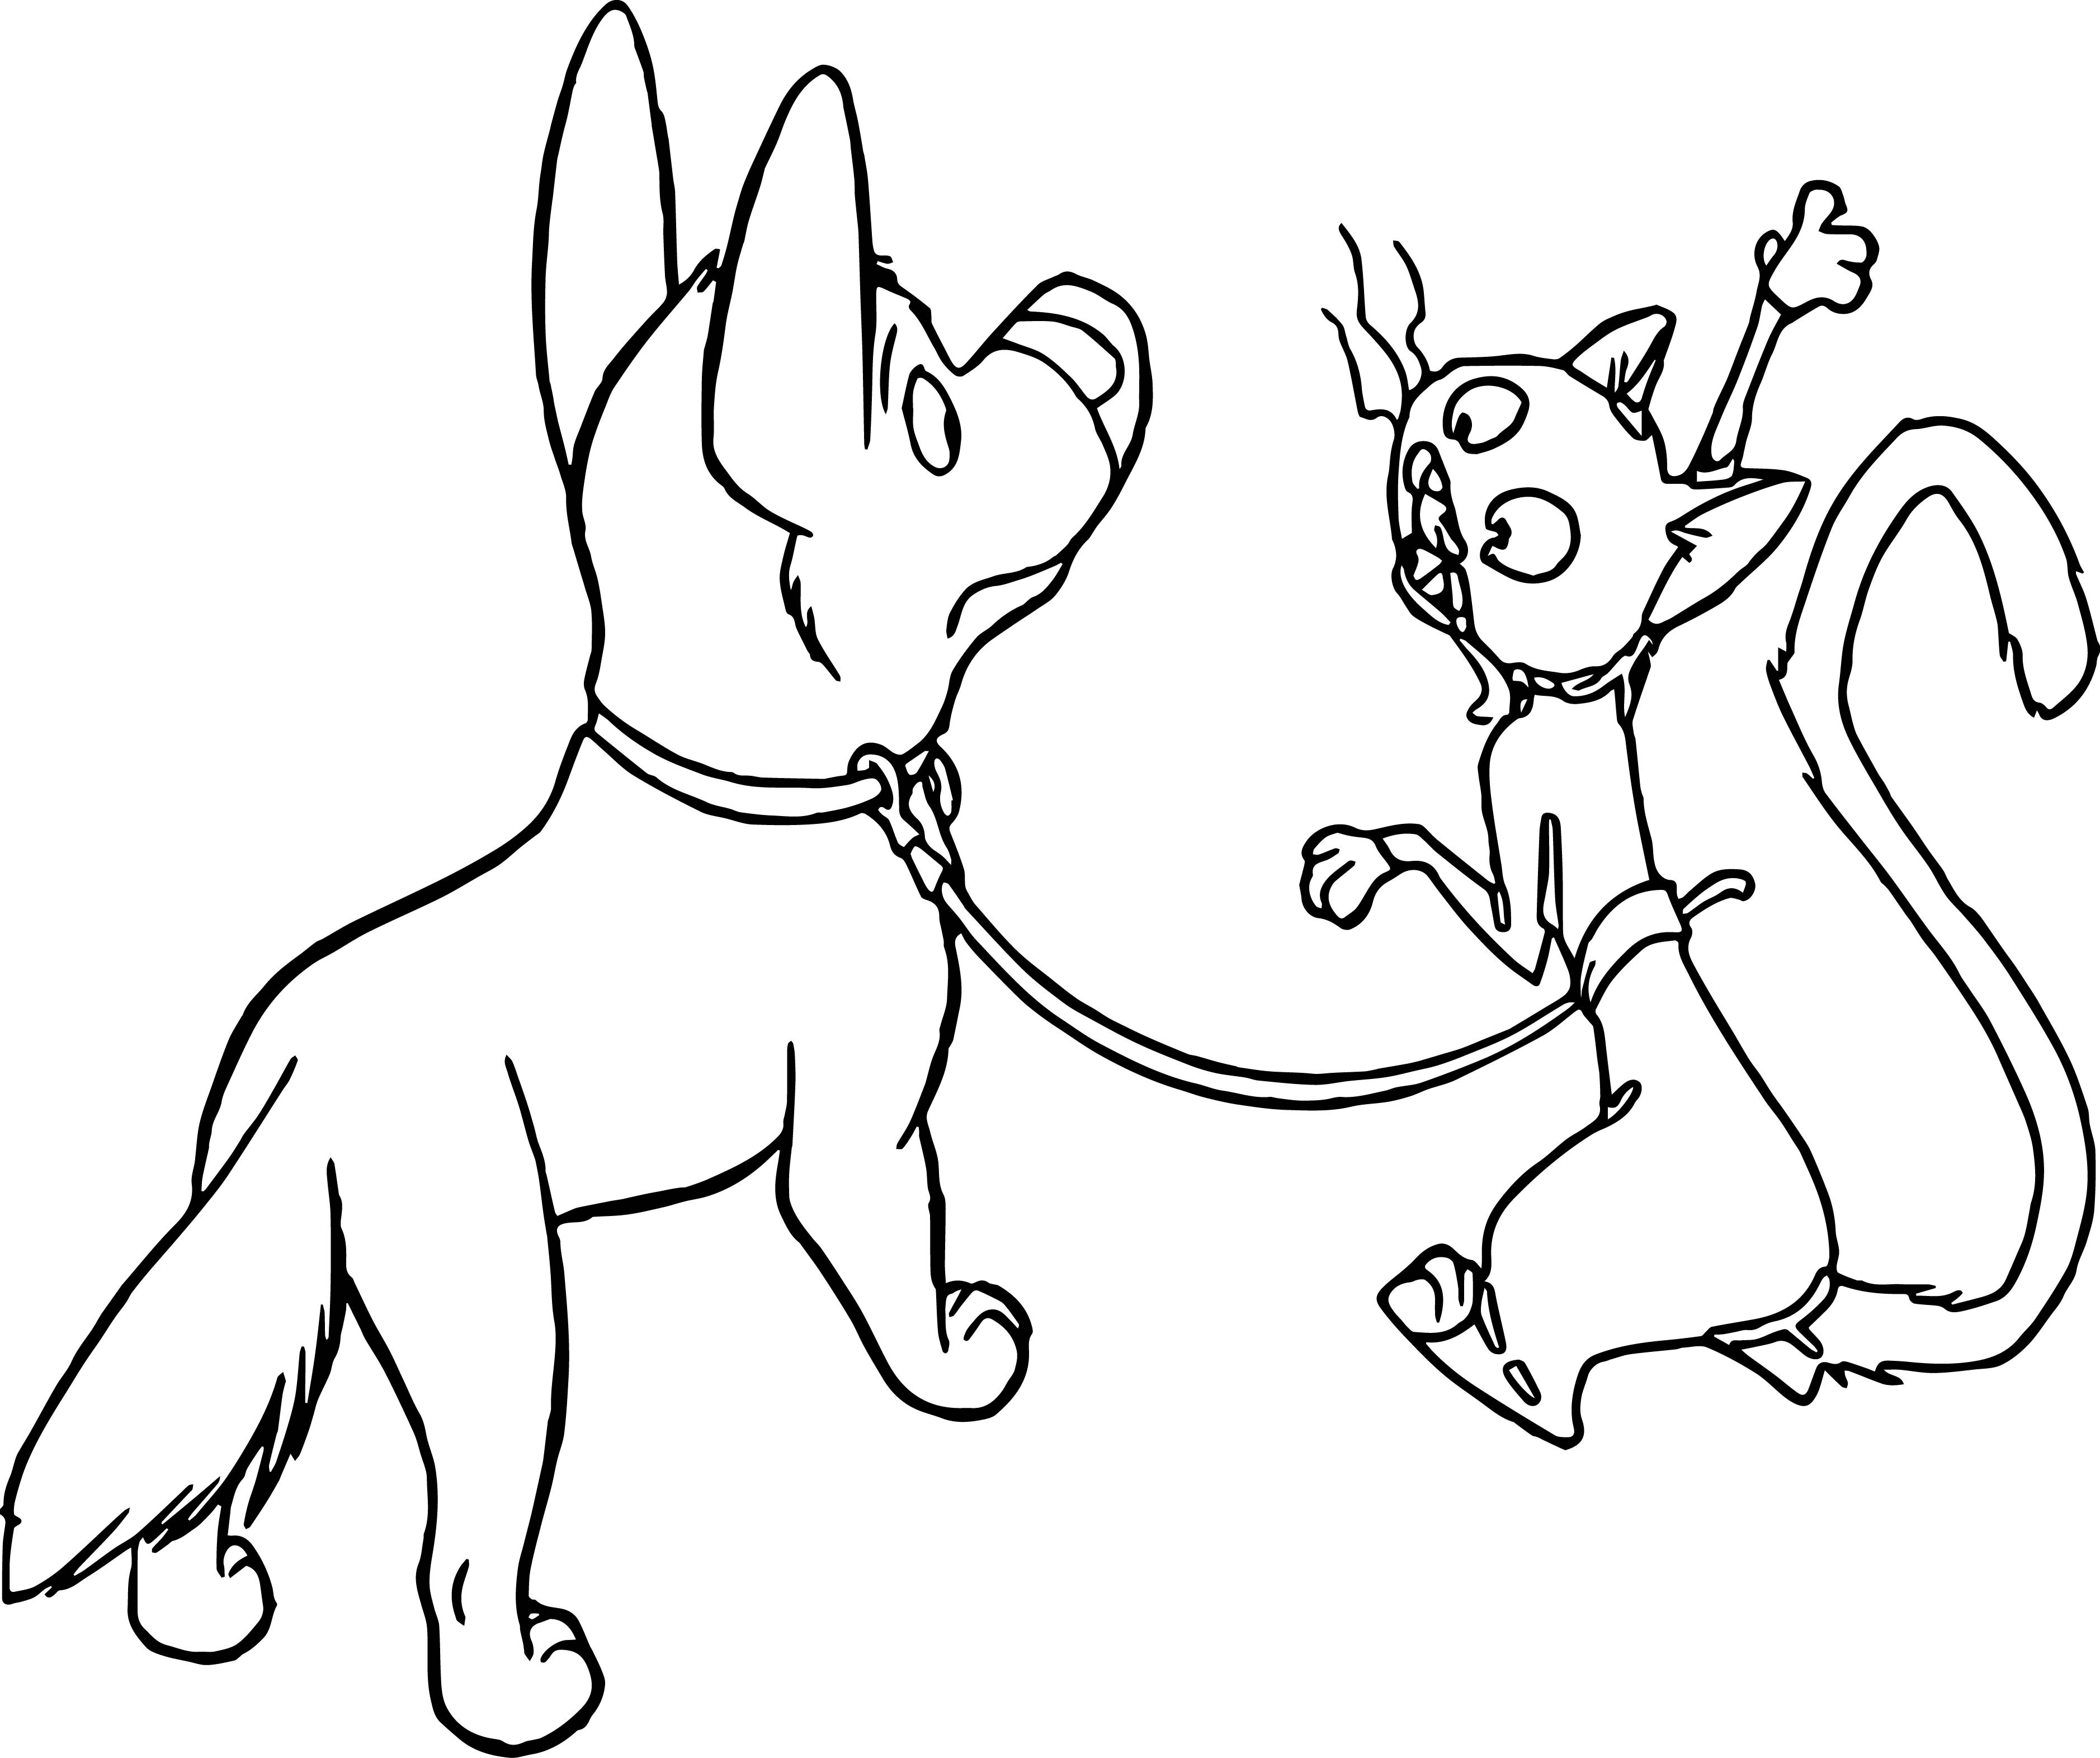 3755x3143 Bolt Characters Coloring Pages For Kids Fresh Bolt Dog Cat